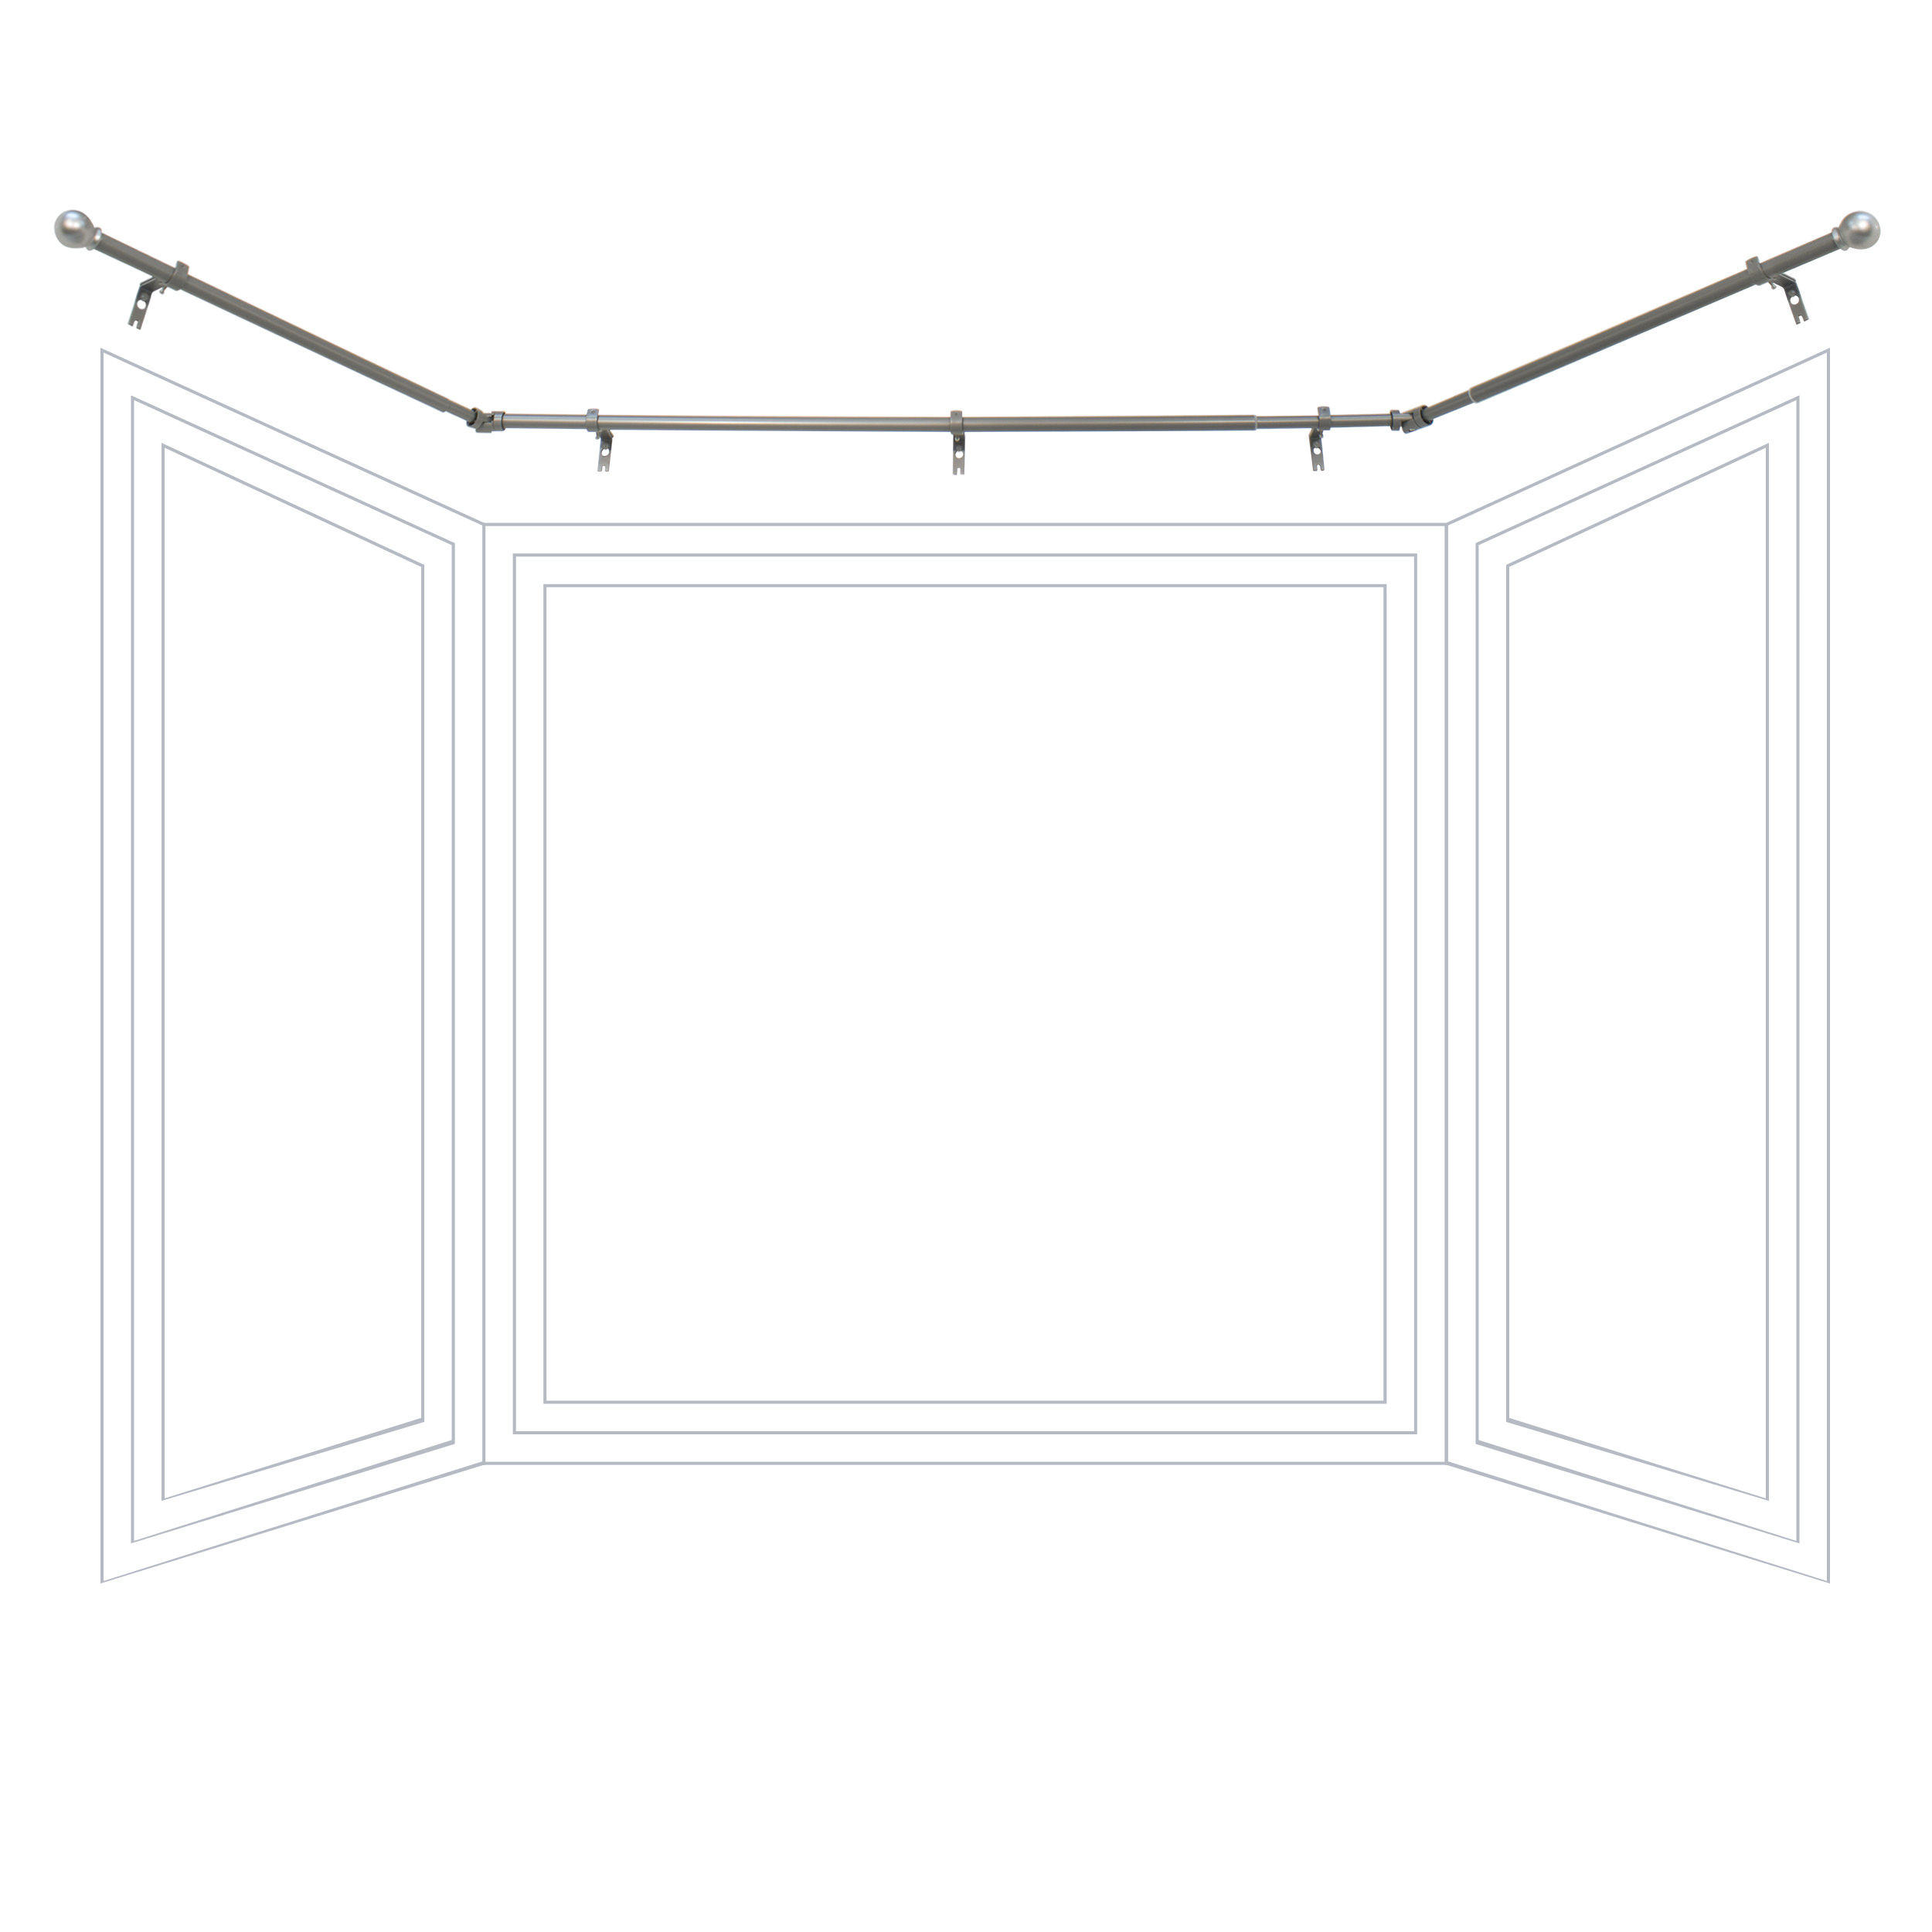 Better Homes and Gardens Bay Window Adjustable Drapery Rod Set by Beme International, LLC